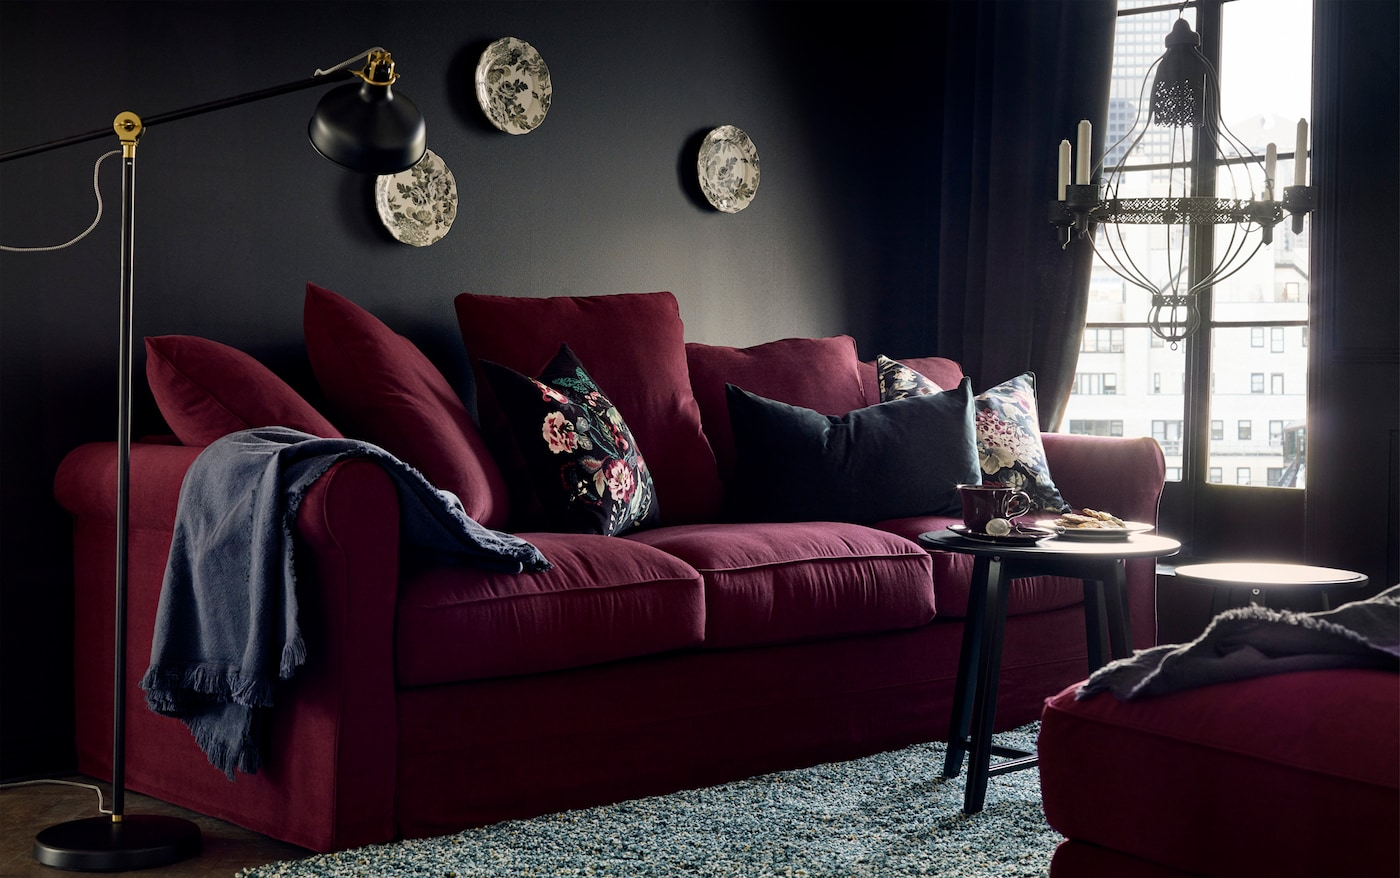 A dark red sofa with a blue throw blanket draped over it and floral accent cushions